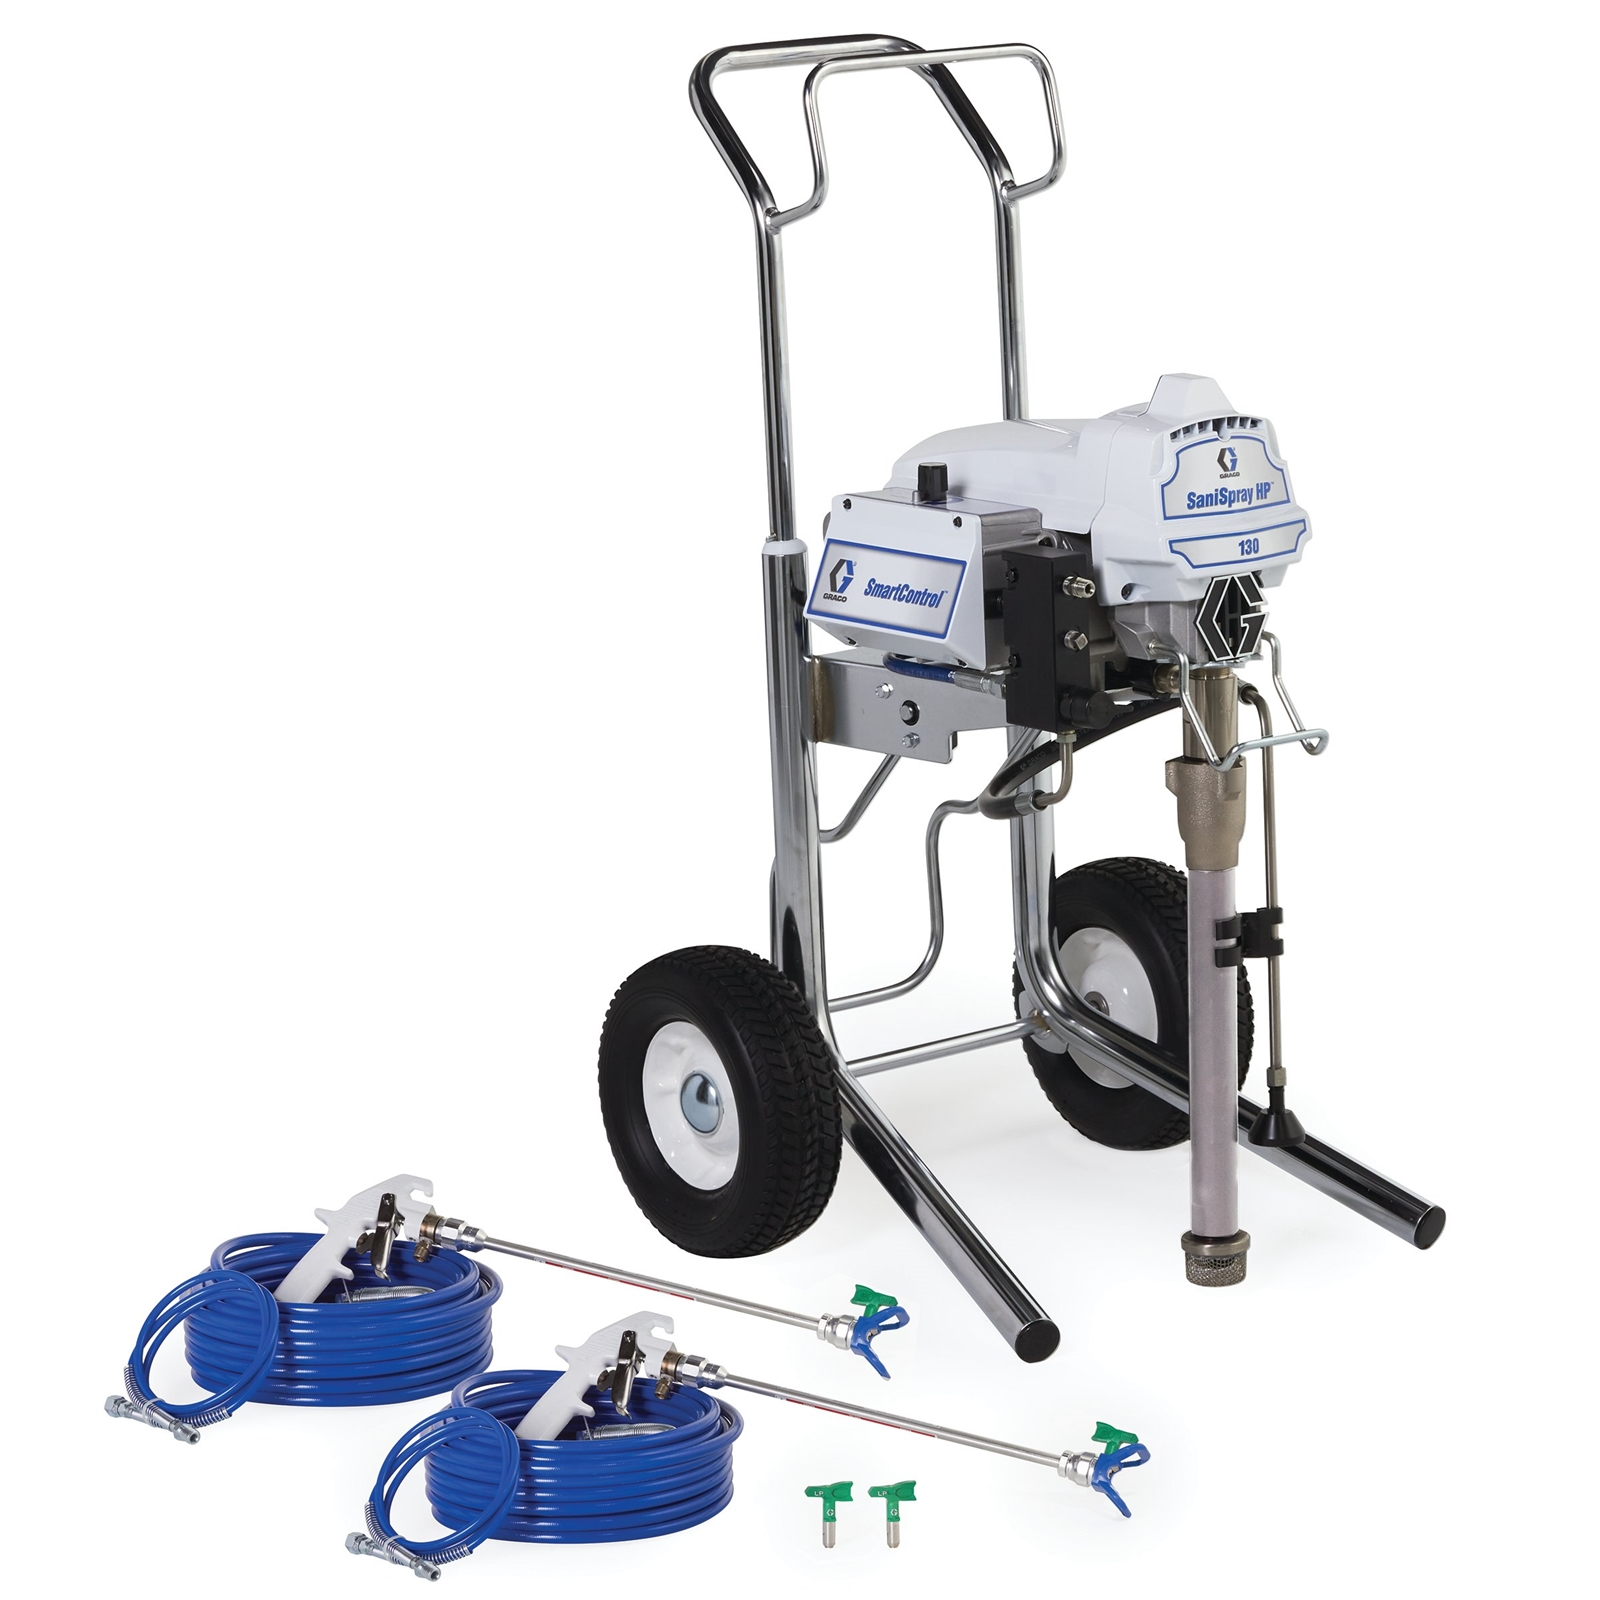 Sterilisation Graco SaniSpray HP 130 Electric Airless Disinfectant Sprayer